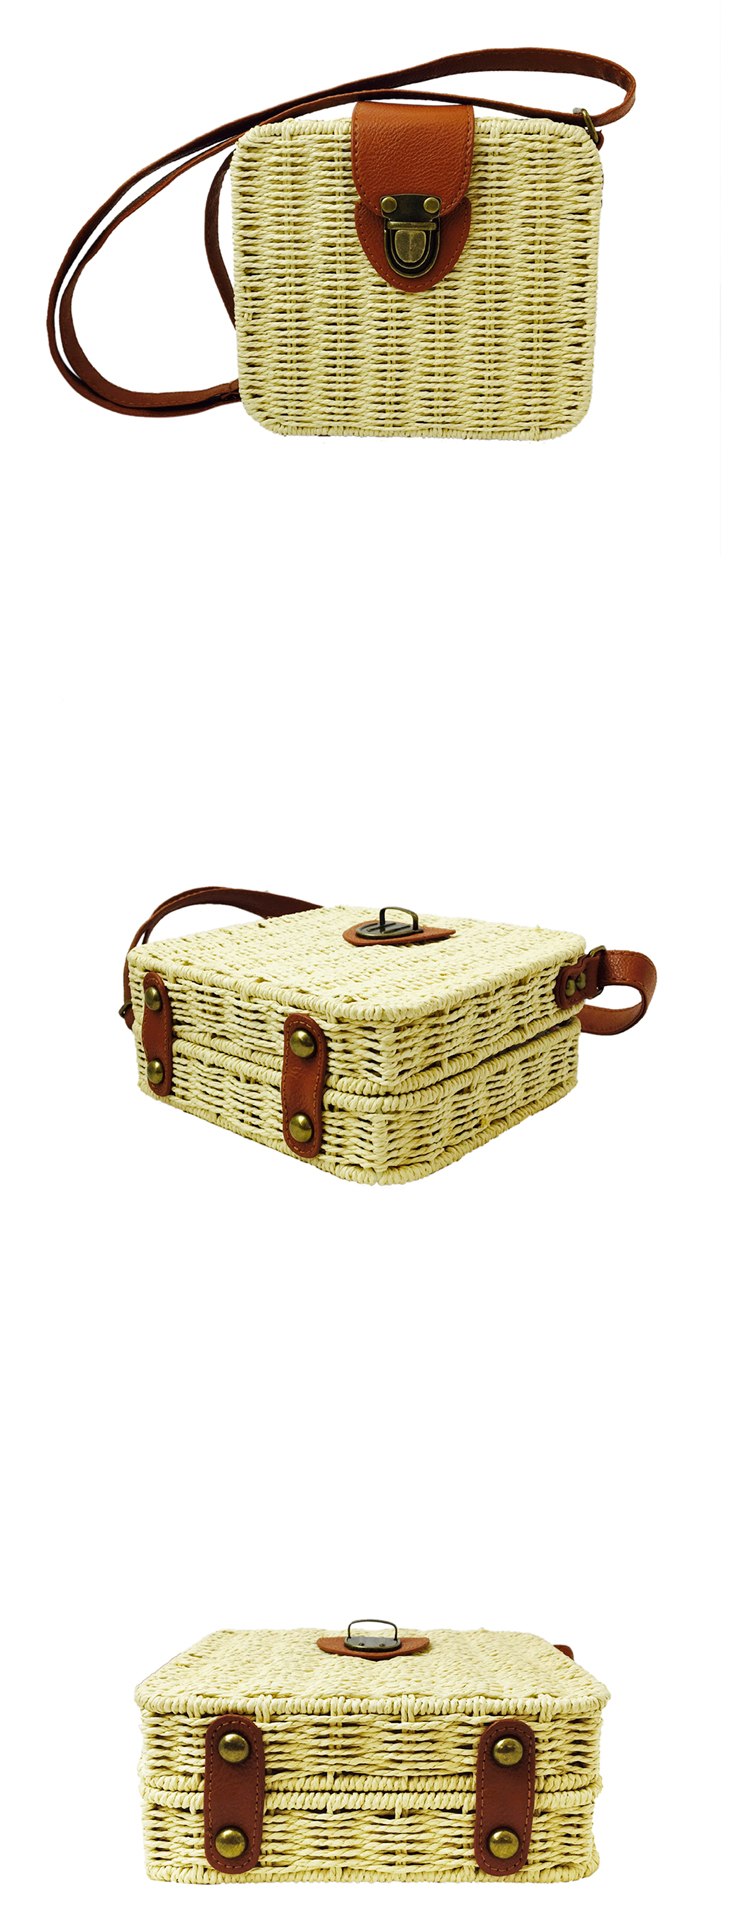 Multi Colors Square Woven Handbag Woman Crossbody Bag Straw with Leather Strap